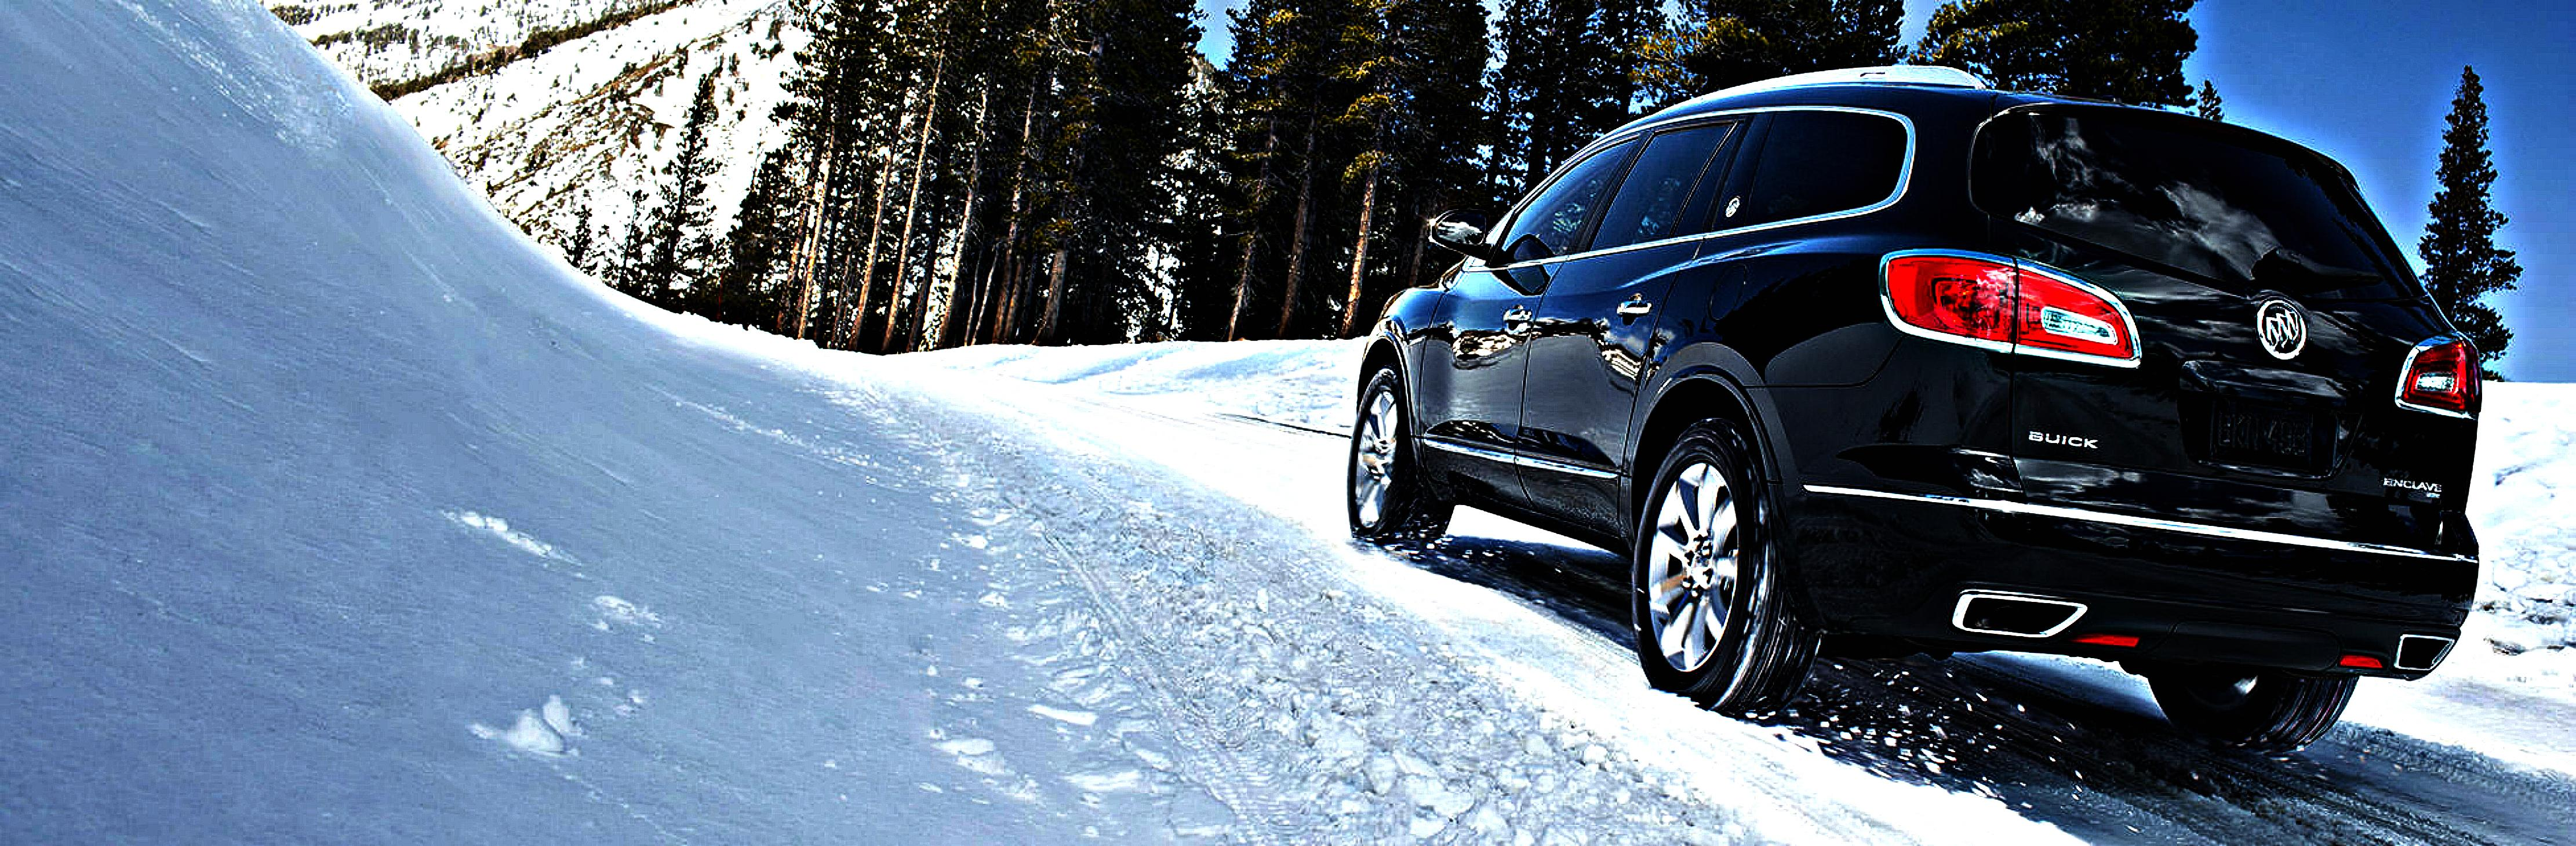 My Buick Enclave